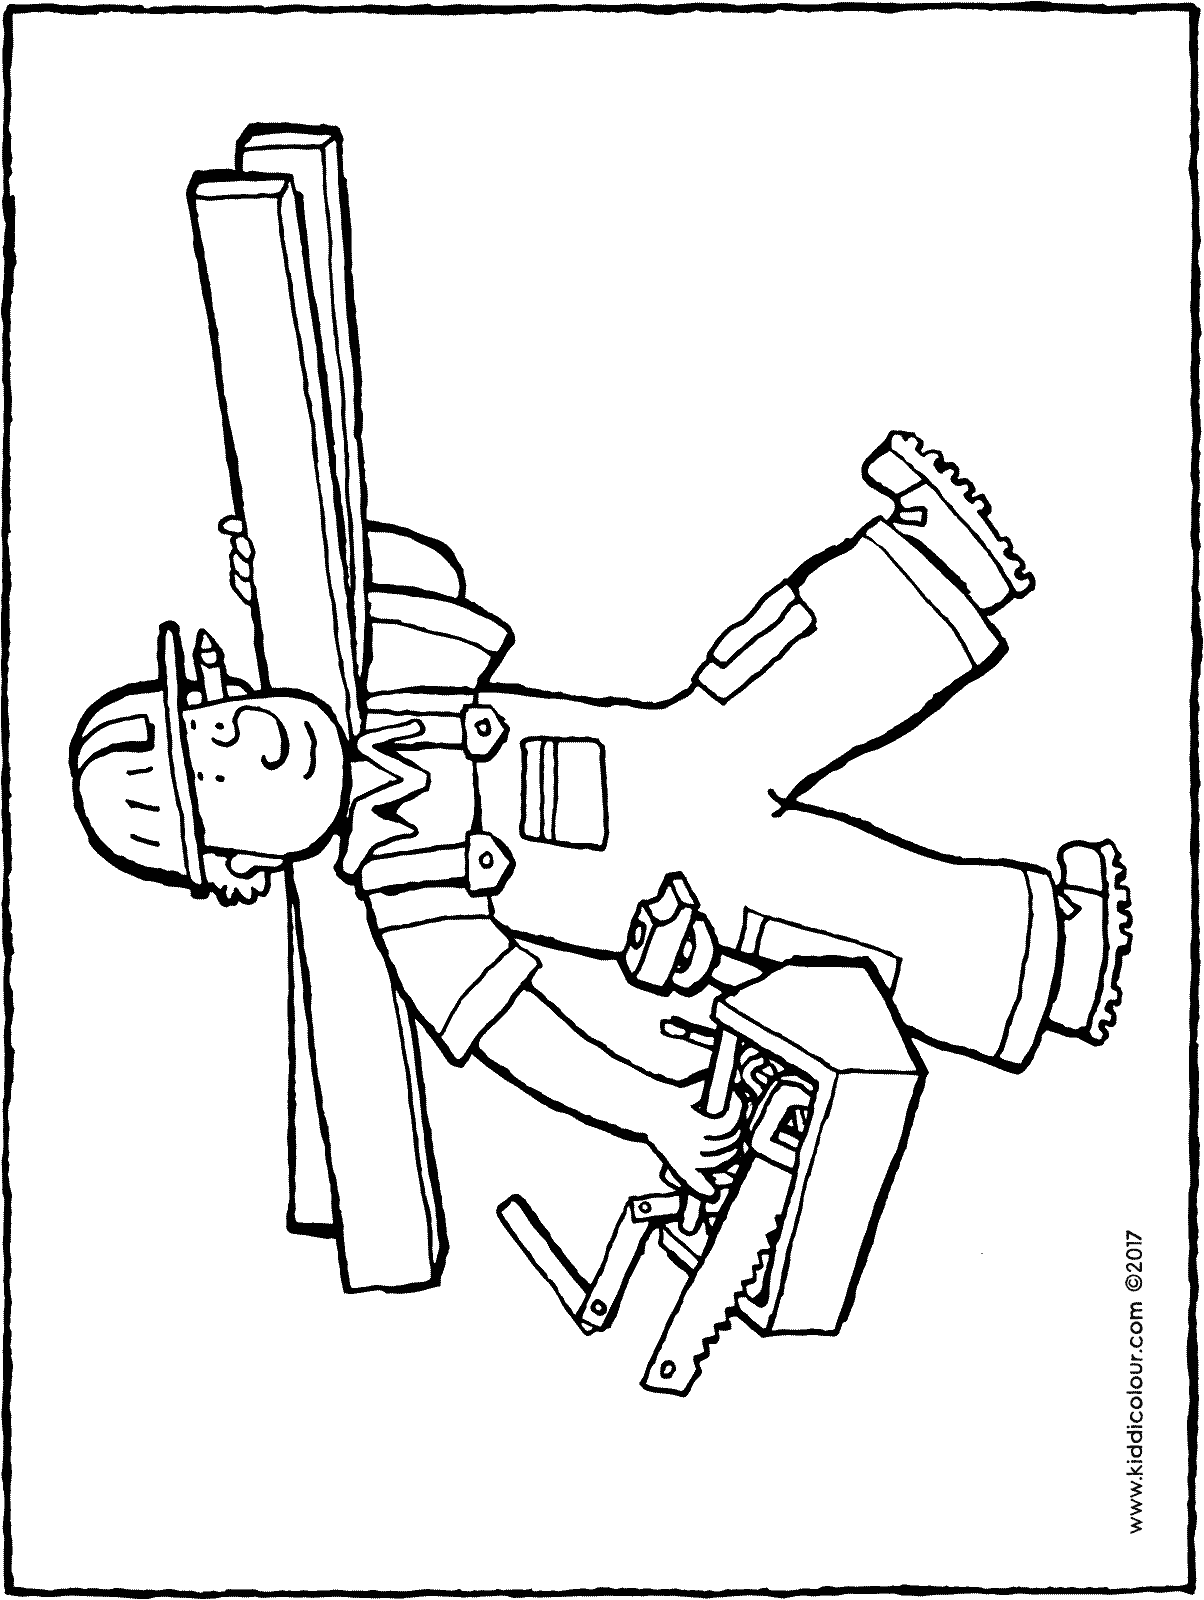 carpenter colouring page drawing picture 01H